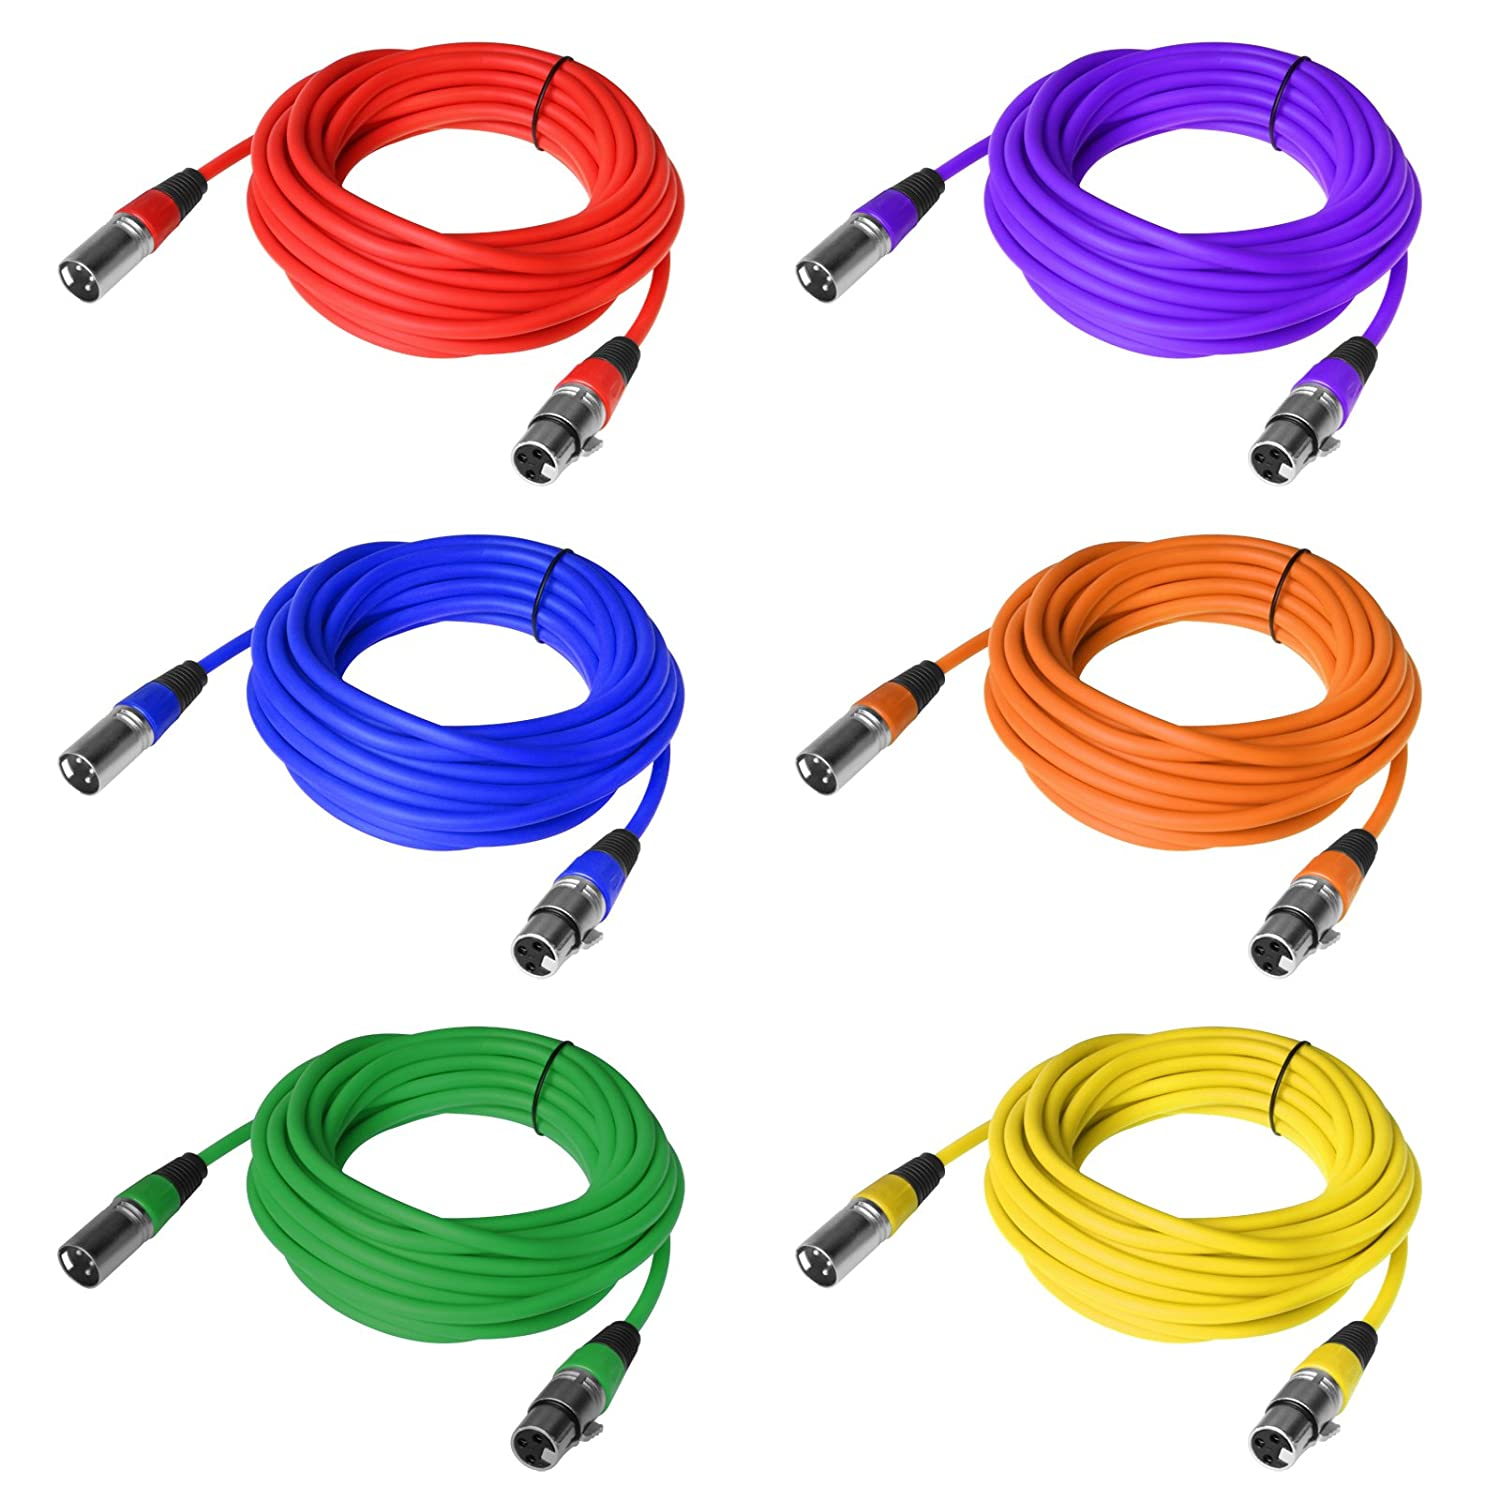 Tsss 76 Metre 6 Colours Xlr 3 Pin Male Female Plug Cable Dmx Signal Wiring A Wire For